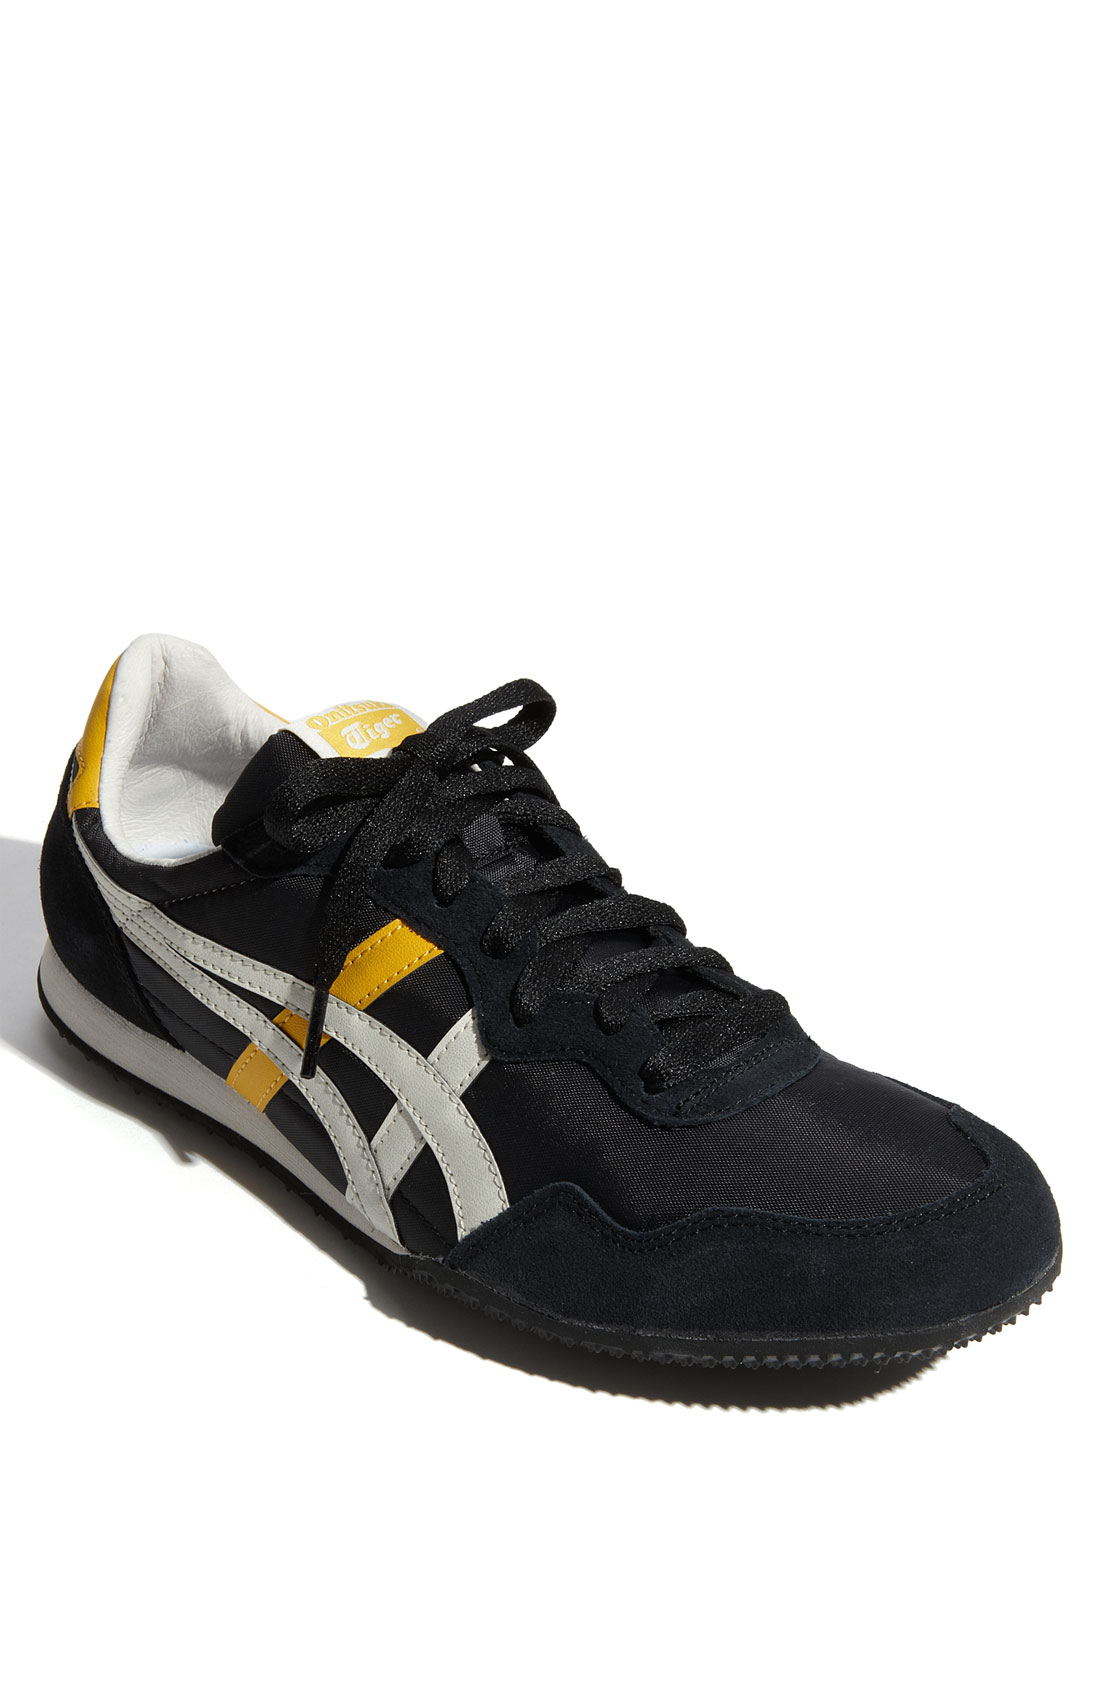 Onitsuka Tiger Mens Shoes